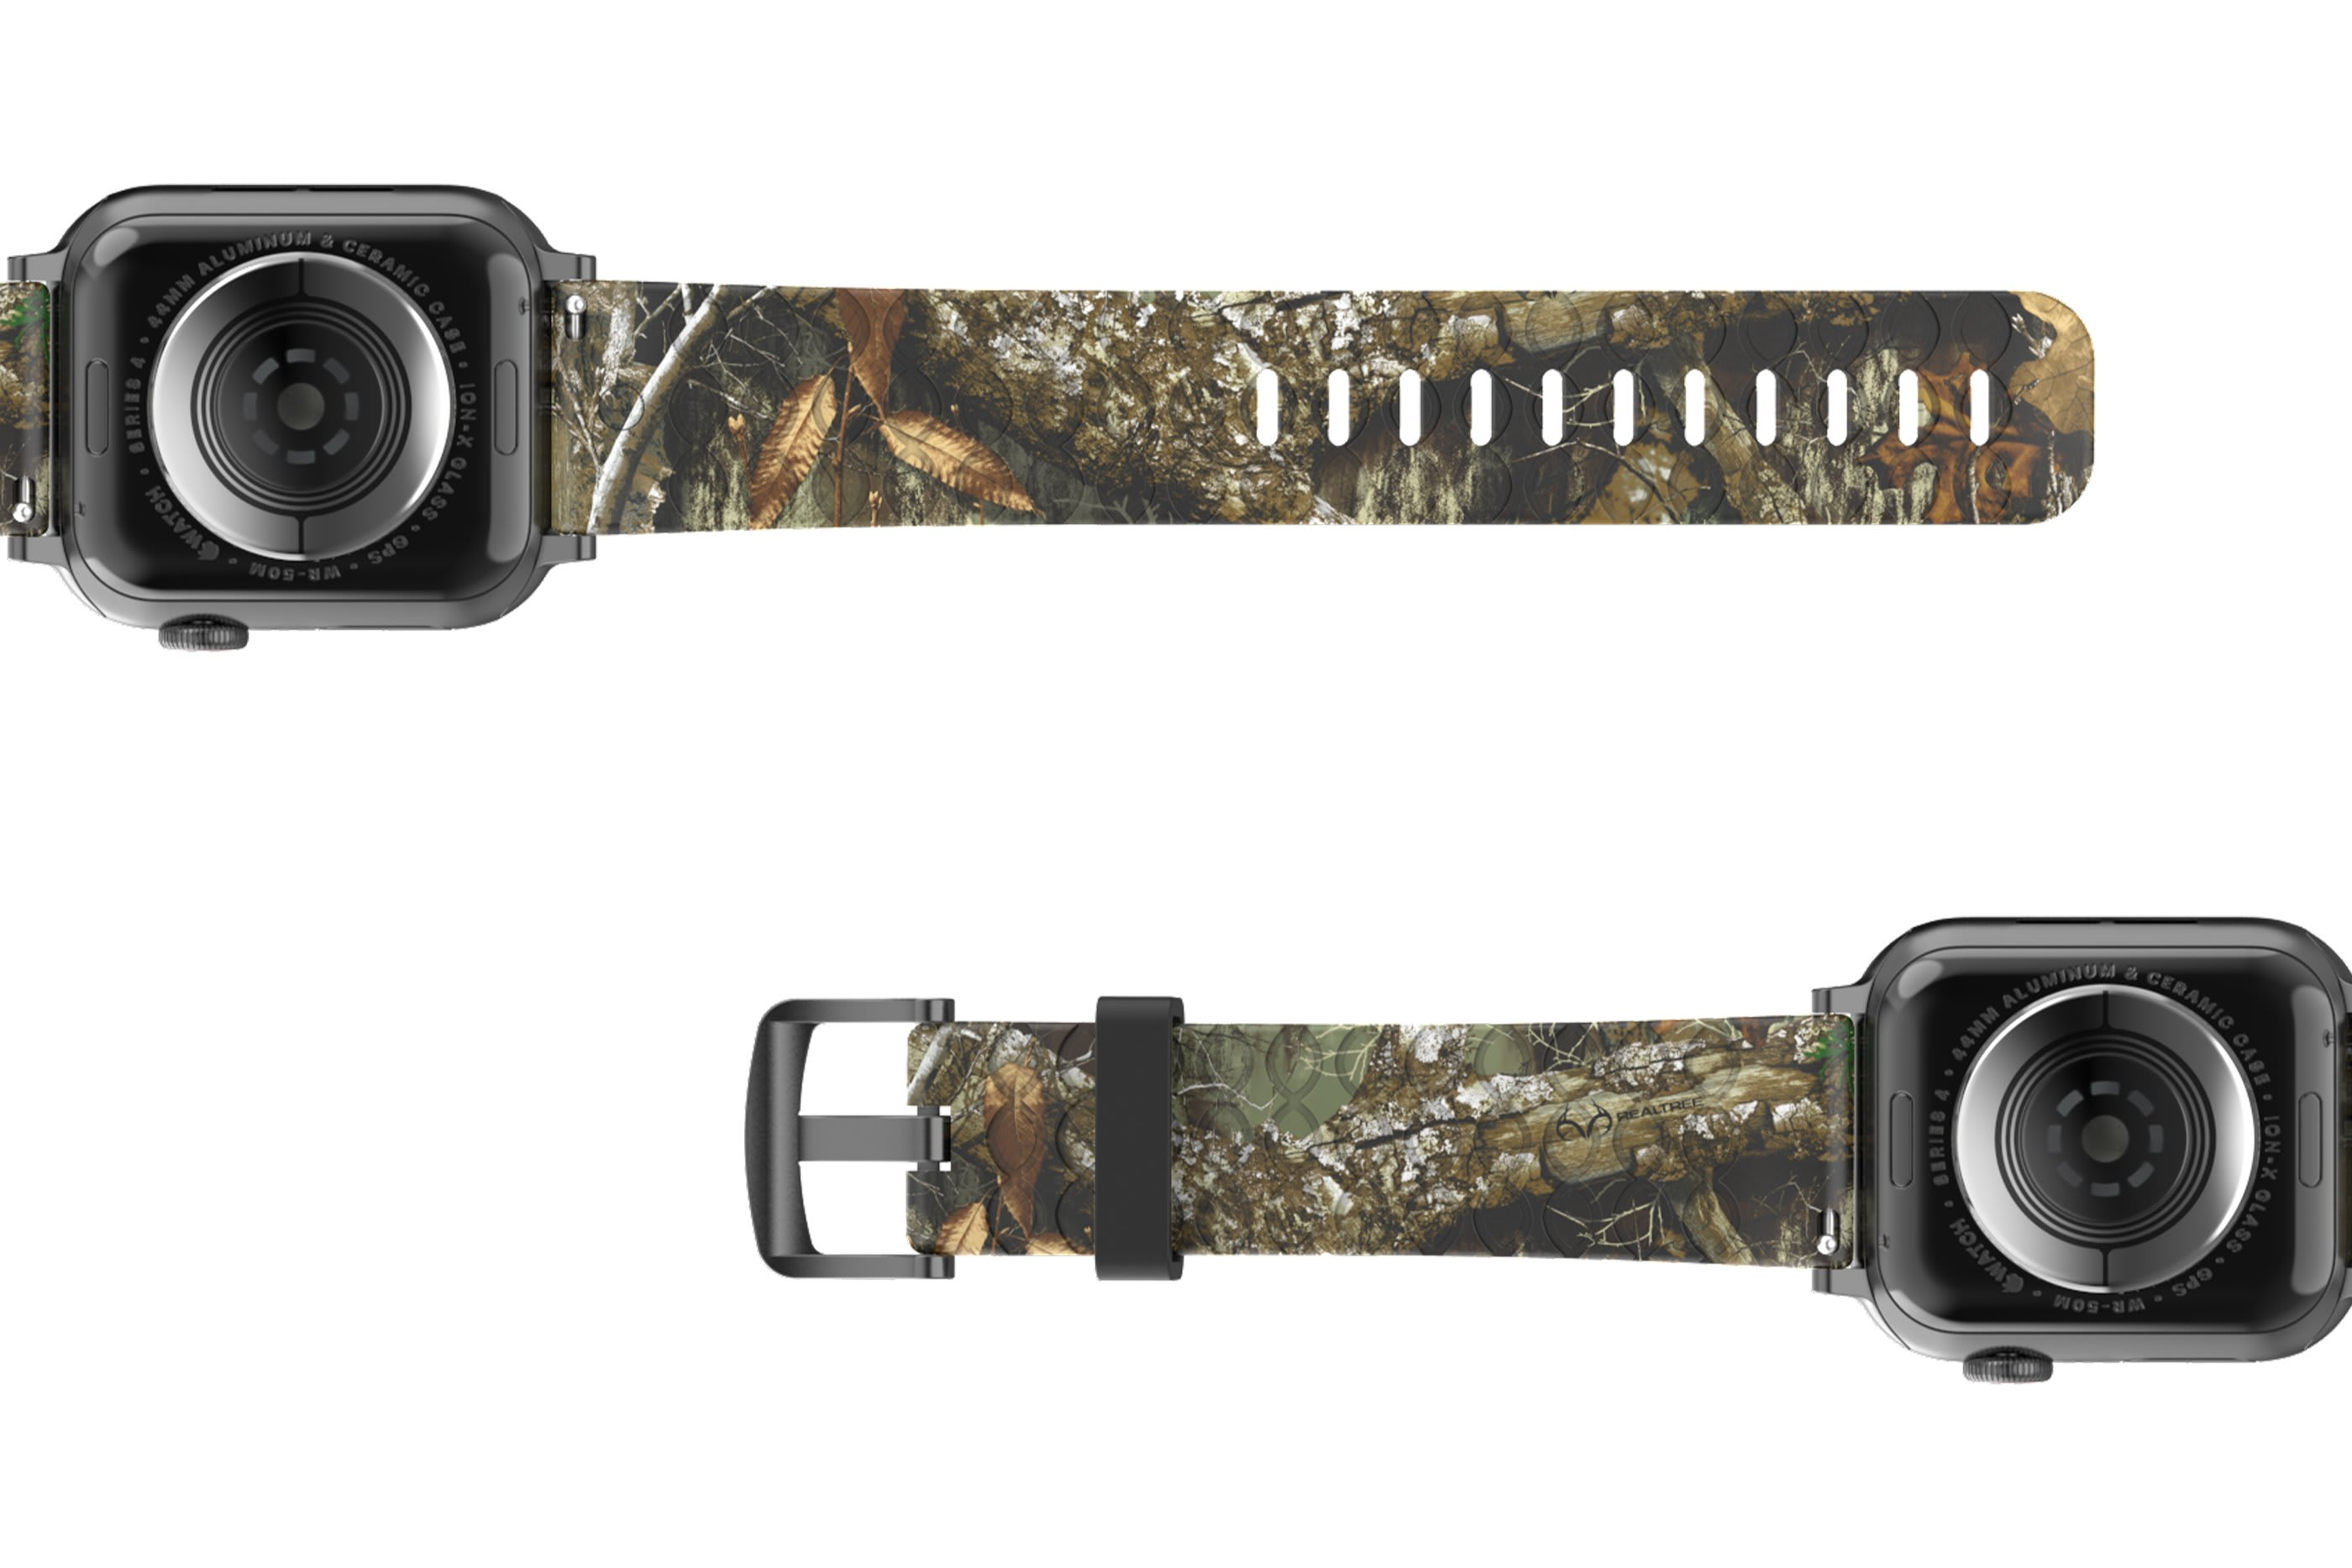 Realtree Edge Apple Watch Band with silver hardware viewed from top down